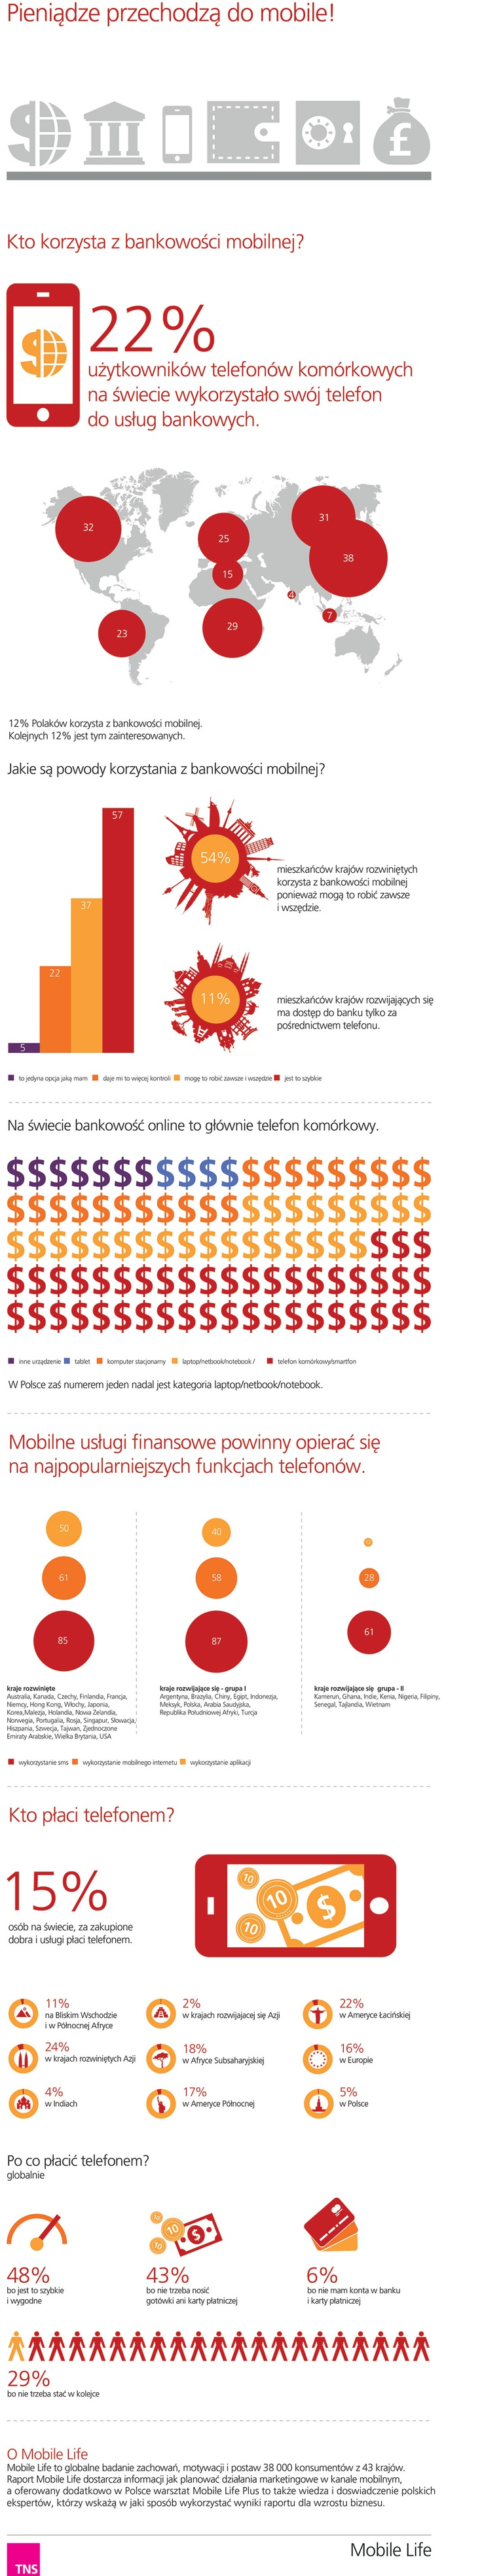 #mobile payments & #mbanking in Poland and worldwide by #TNSPolska